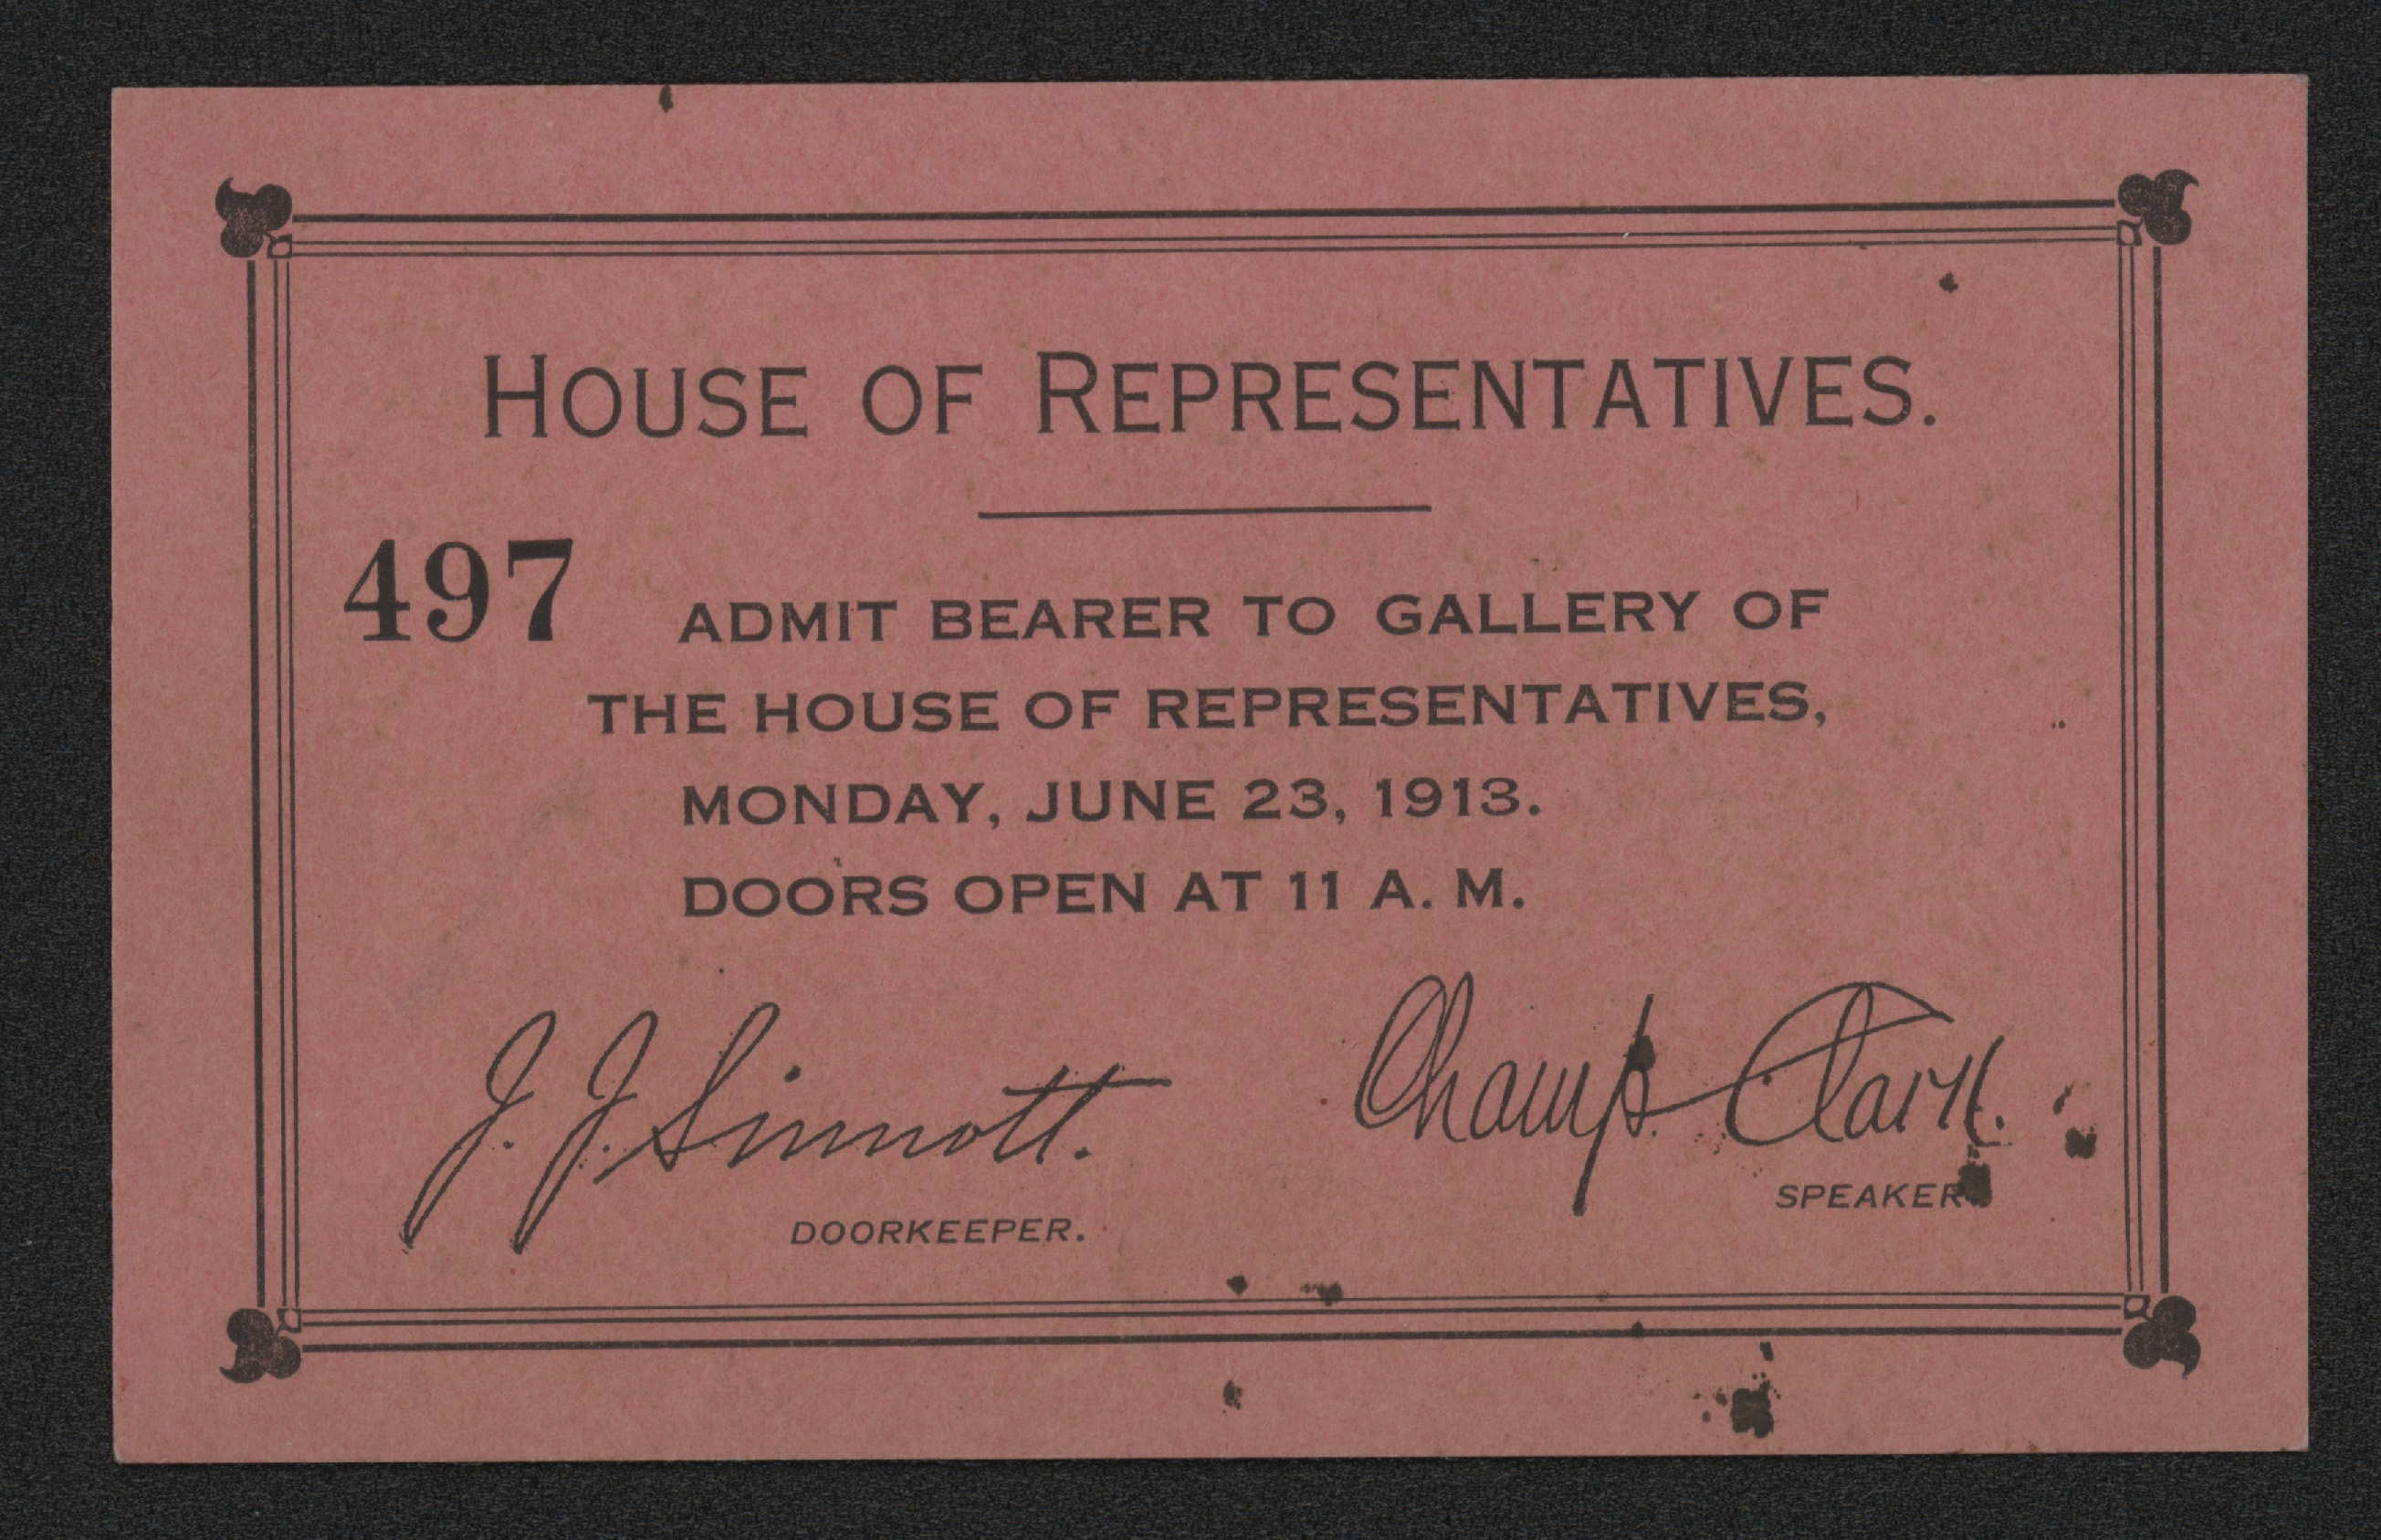 1913 House of Representatives ticket